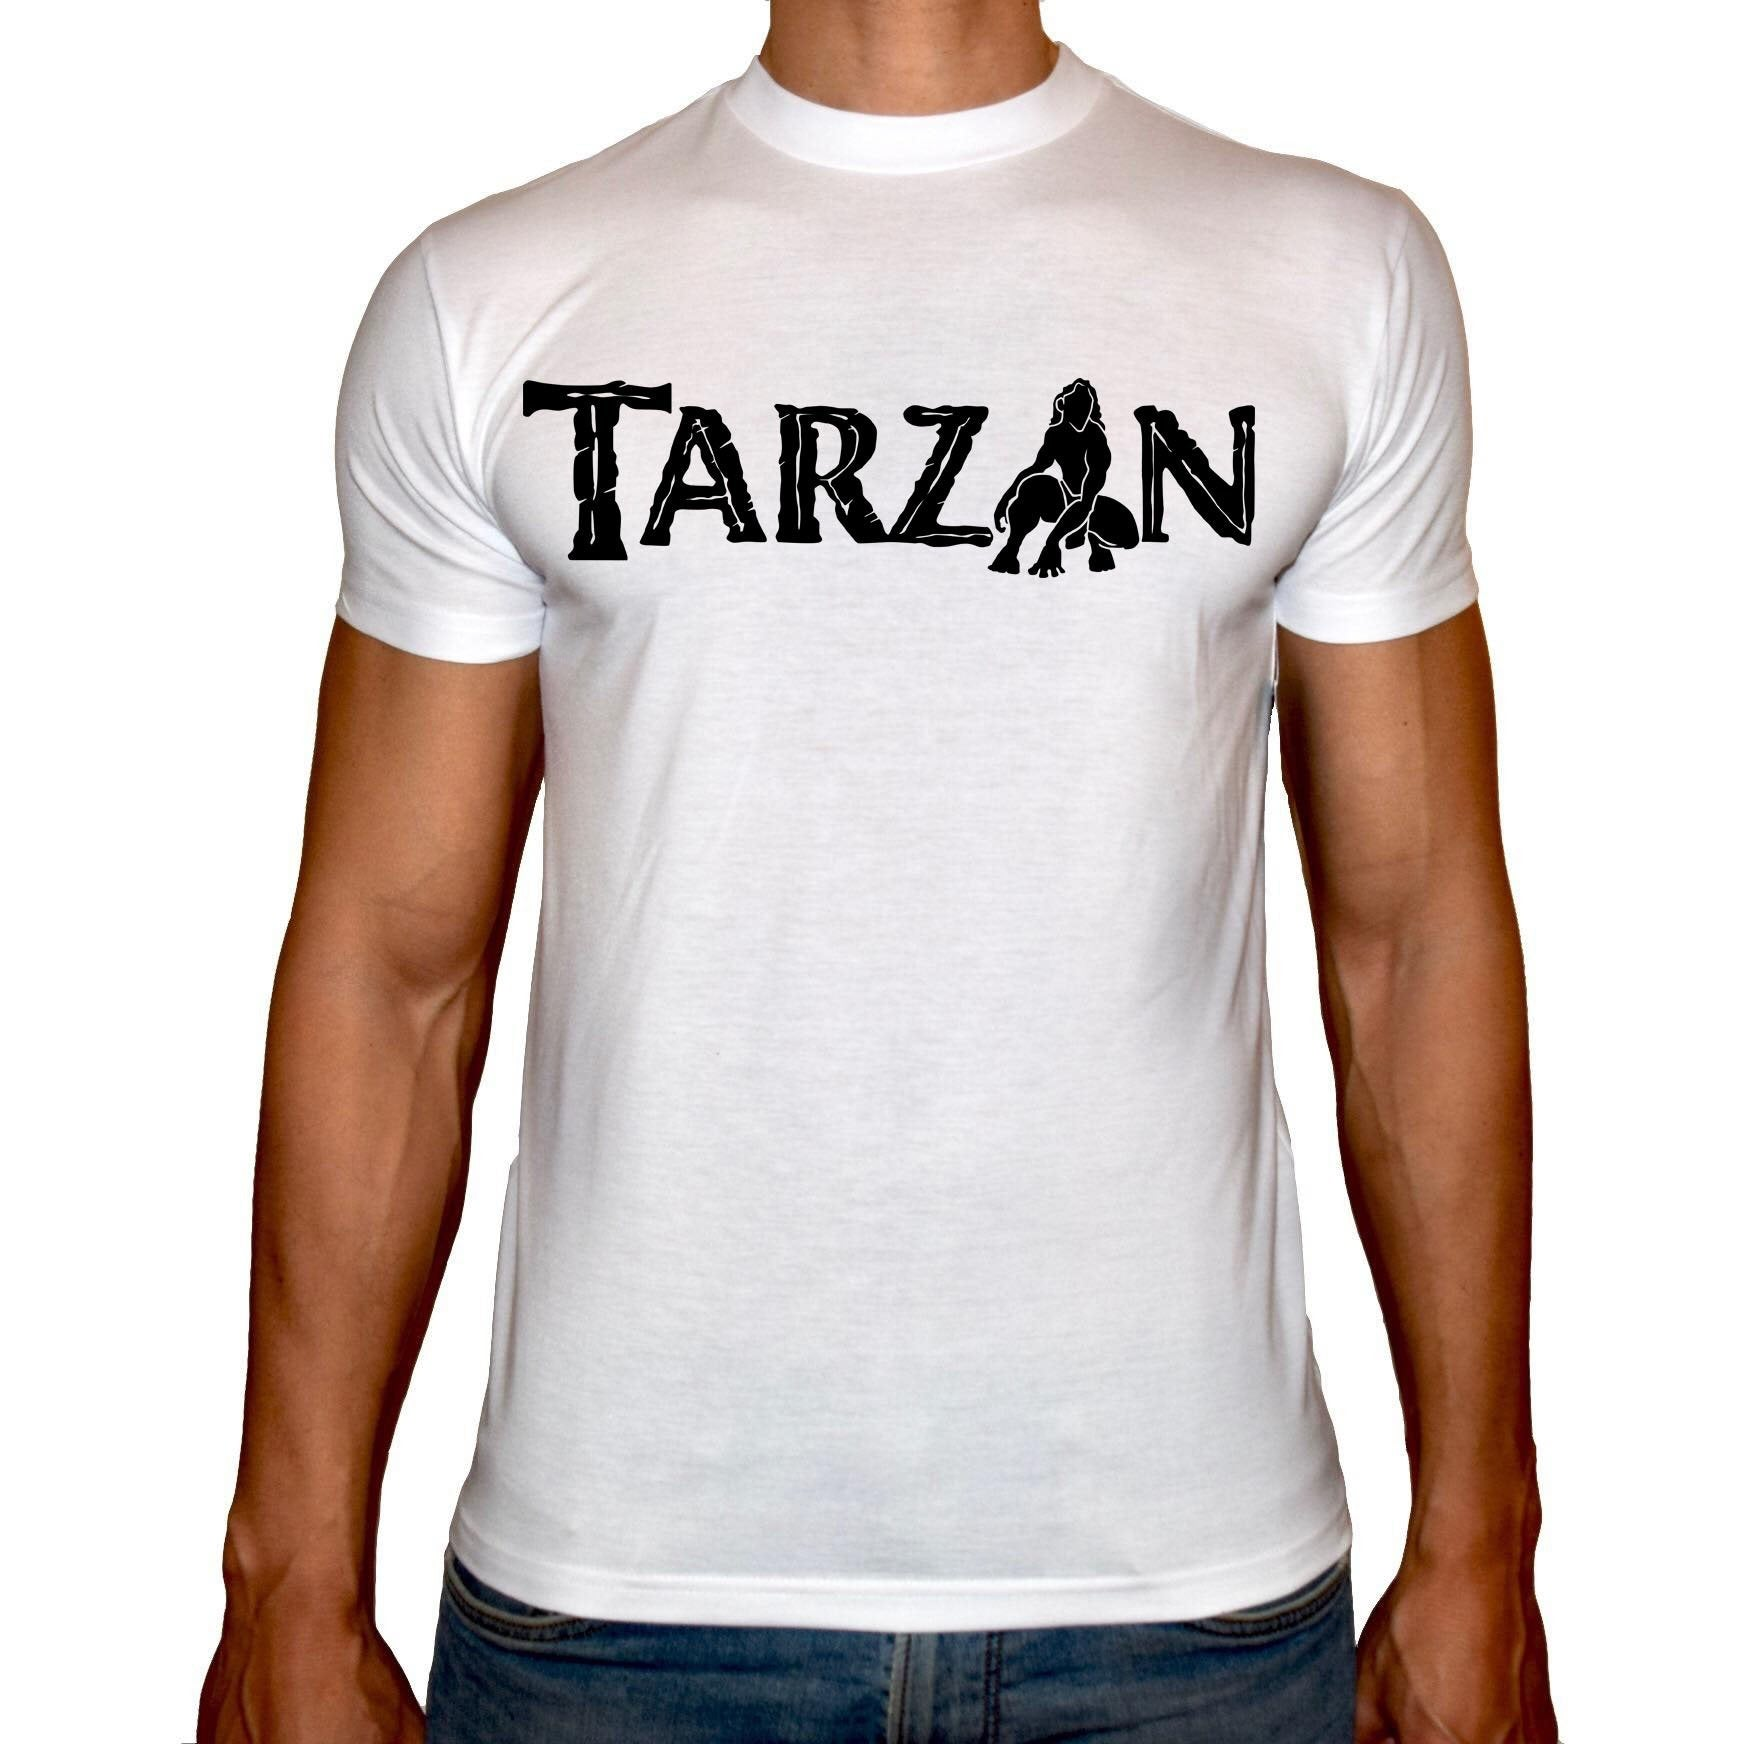 Phoenix WHITE Round Neck Printed T-Shirt Men (Tarzan)